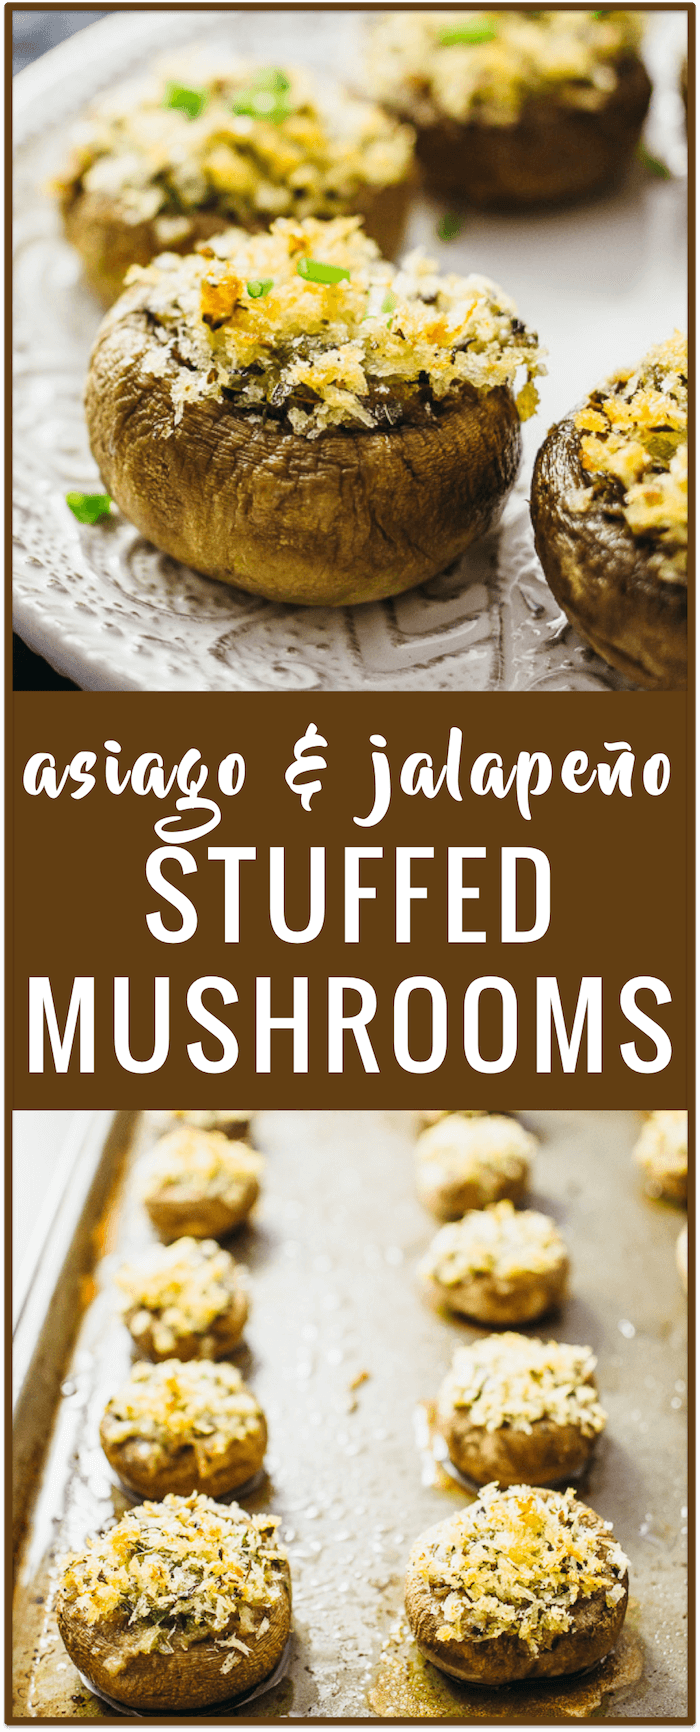 Asiago and jalapeño stuffed mushrooms recipe: Make these easy stuffed mushrooms with asiago cheese, bread crumbs, oregano, and diced jalapeños. No cream cheese needed.